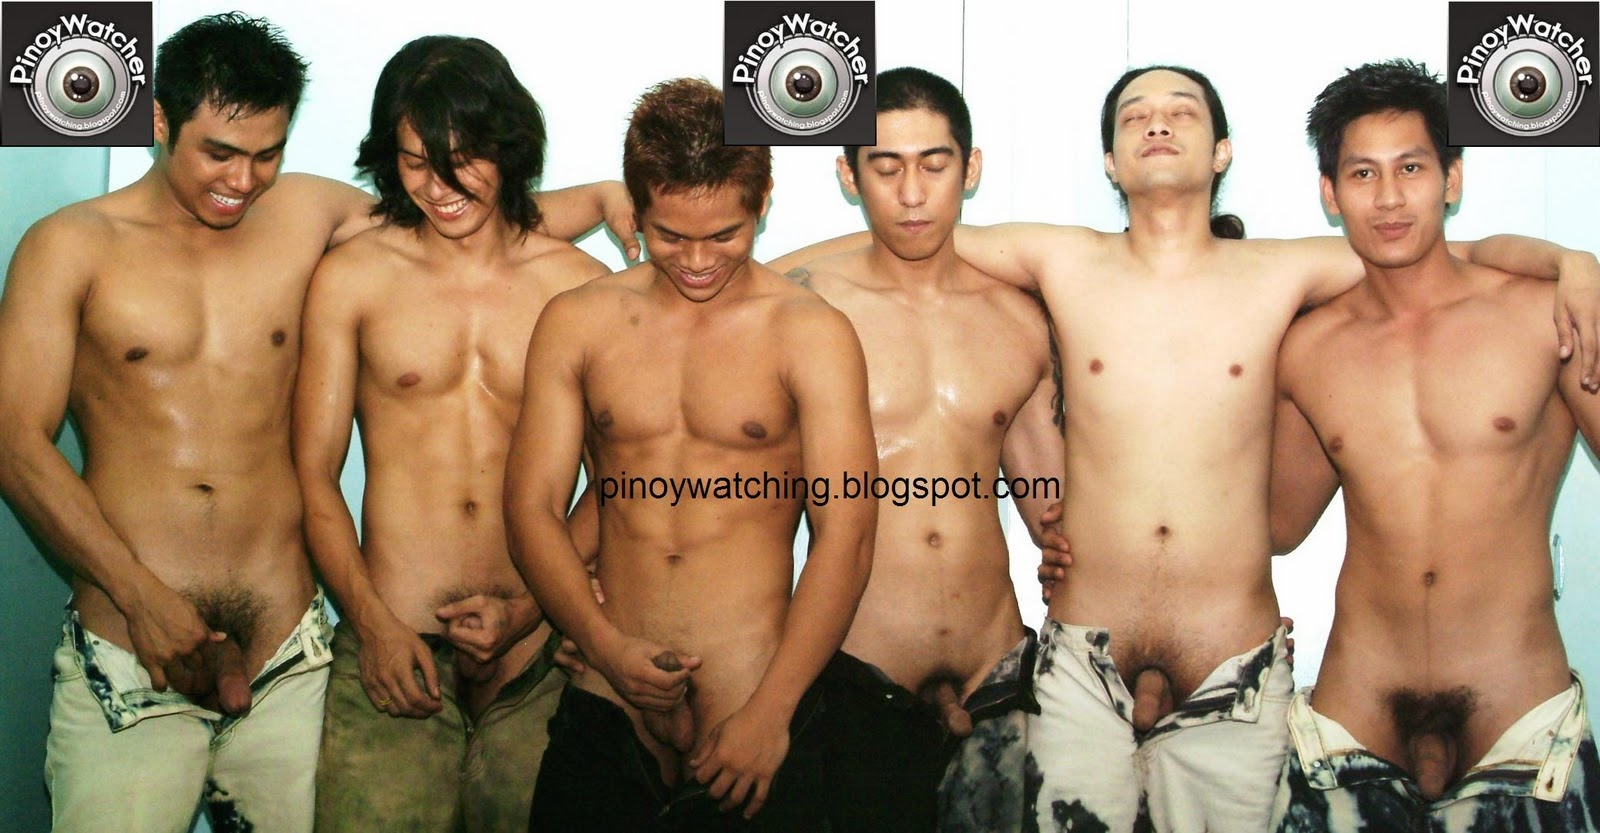 Pinoy Men Sex Nude Videos 87